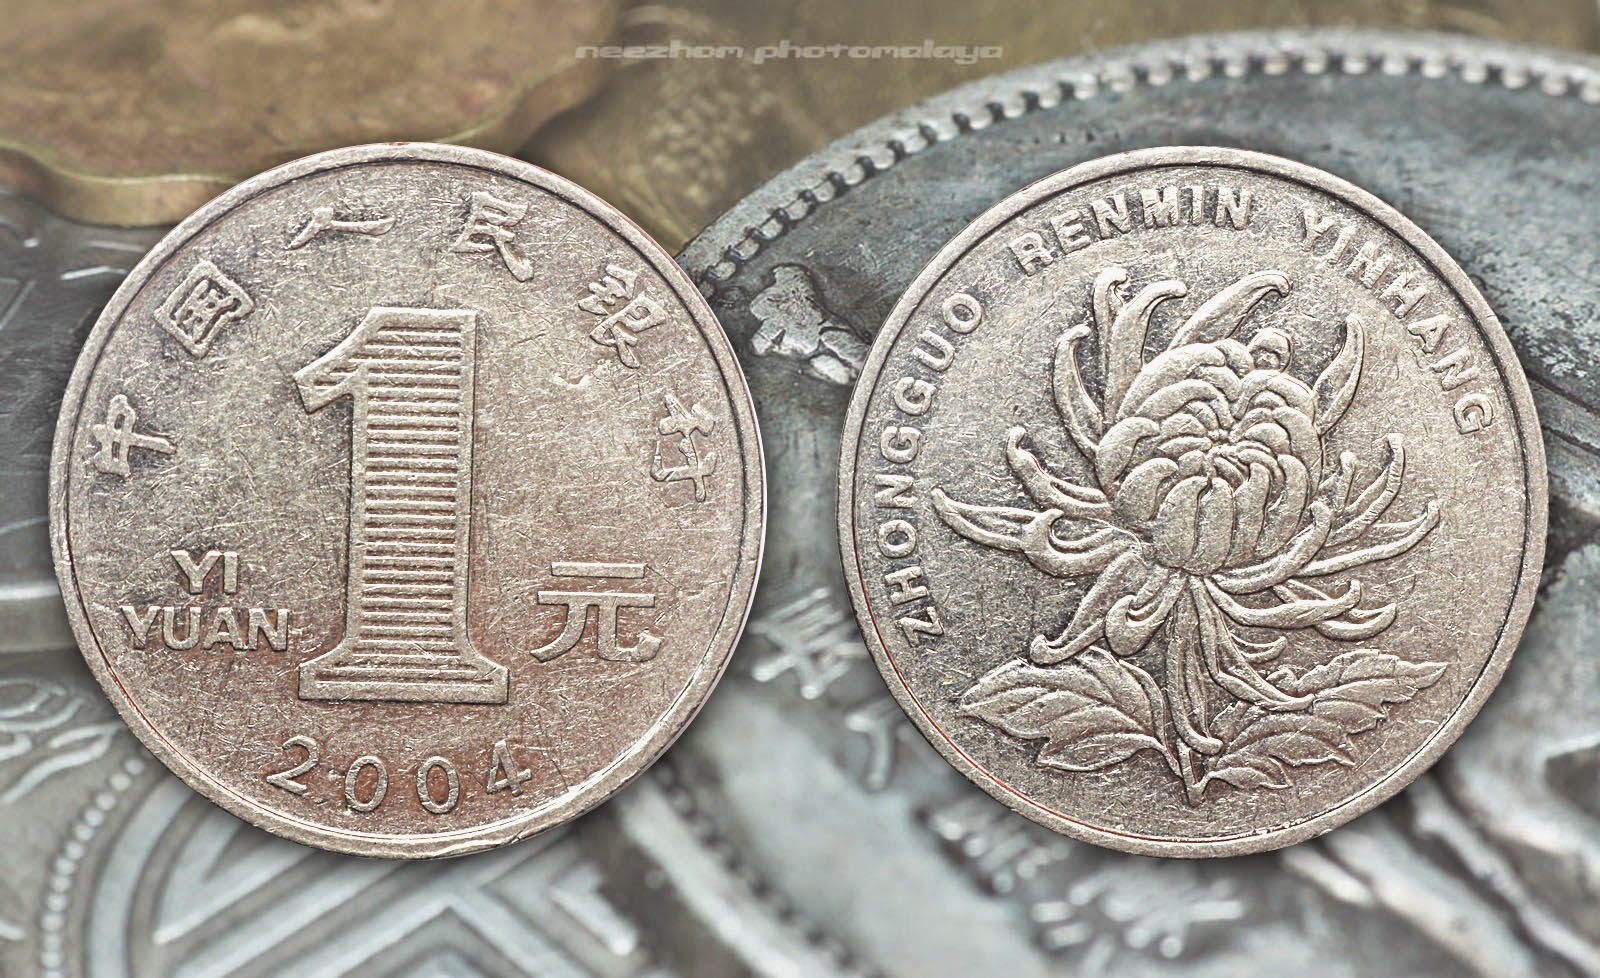 Chinese coin 1 Yuan 2004